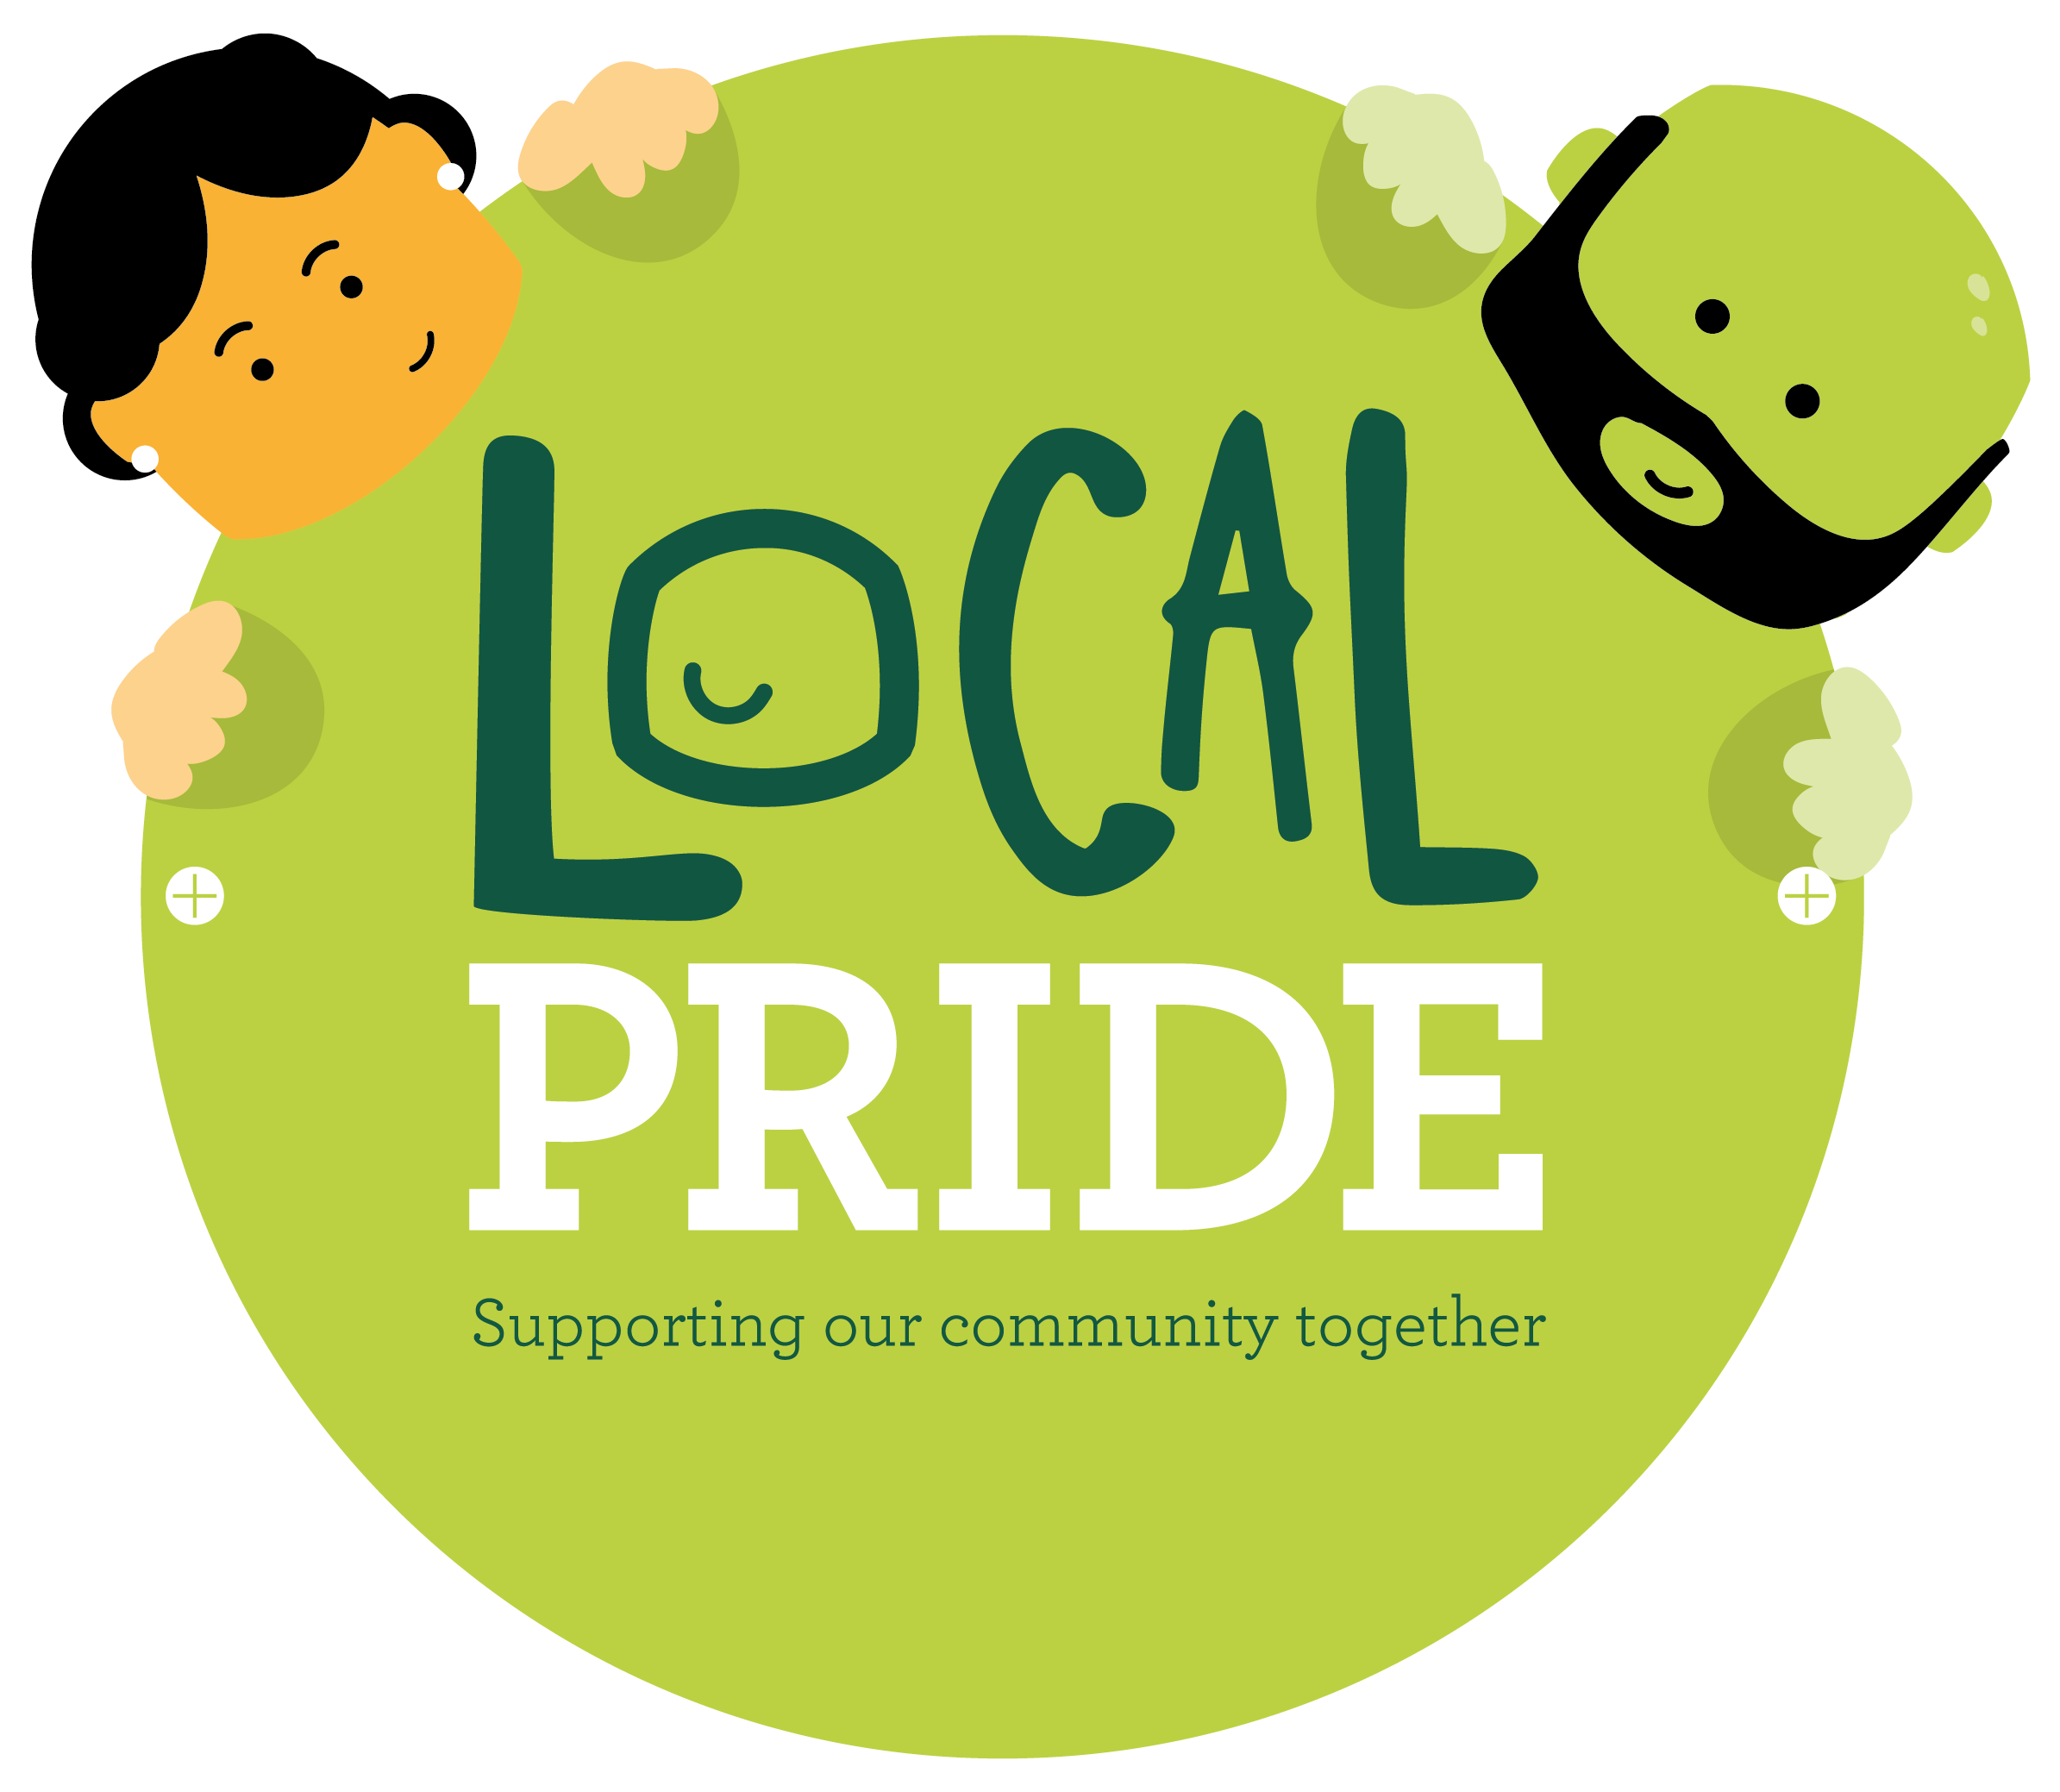 Local Pride Central Charity